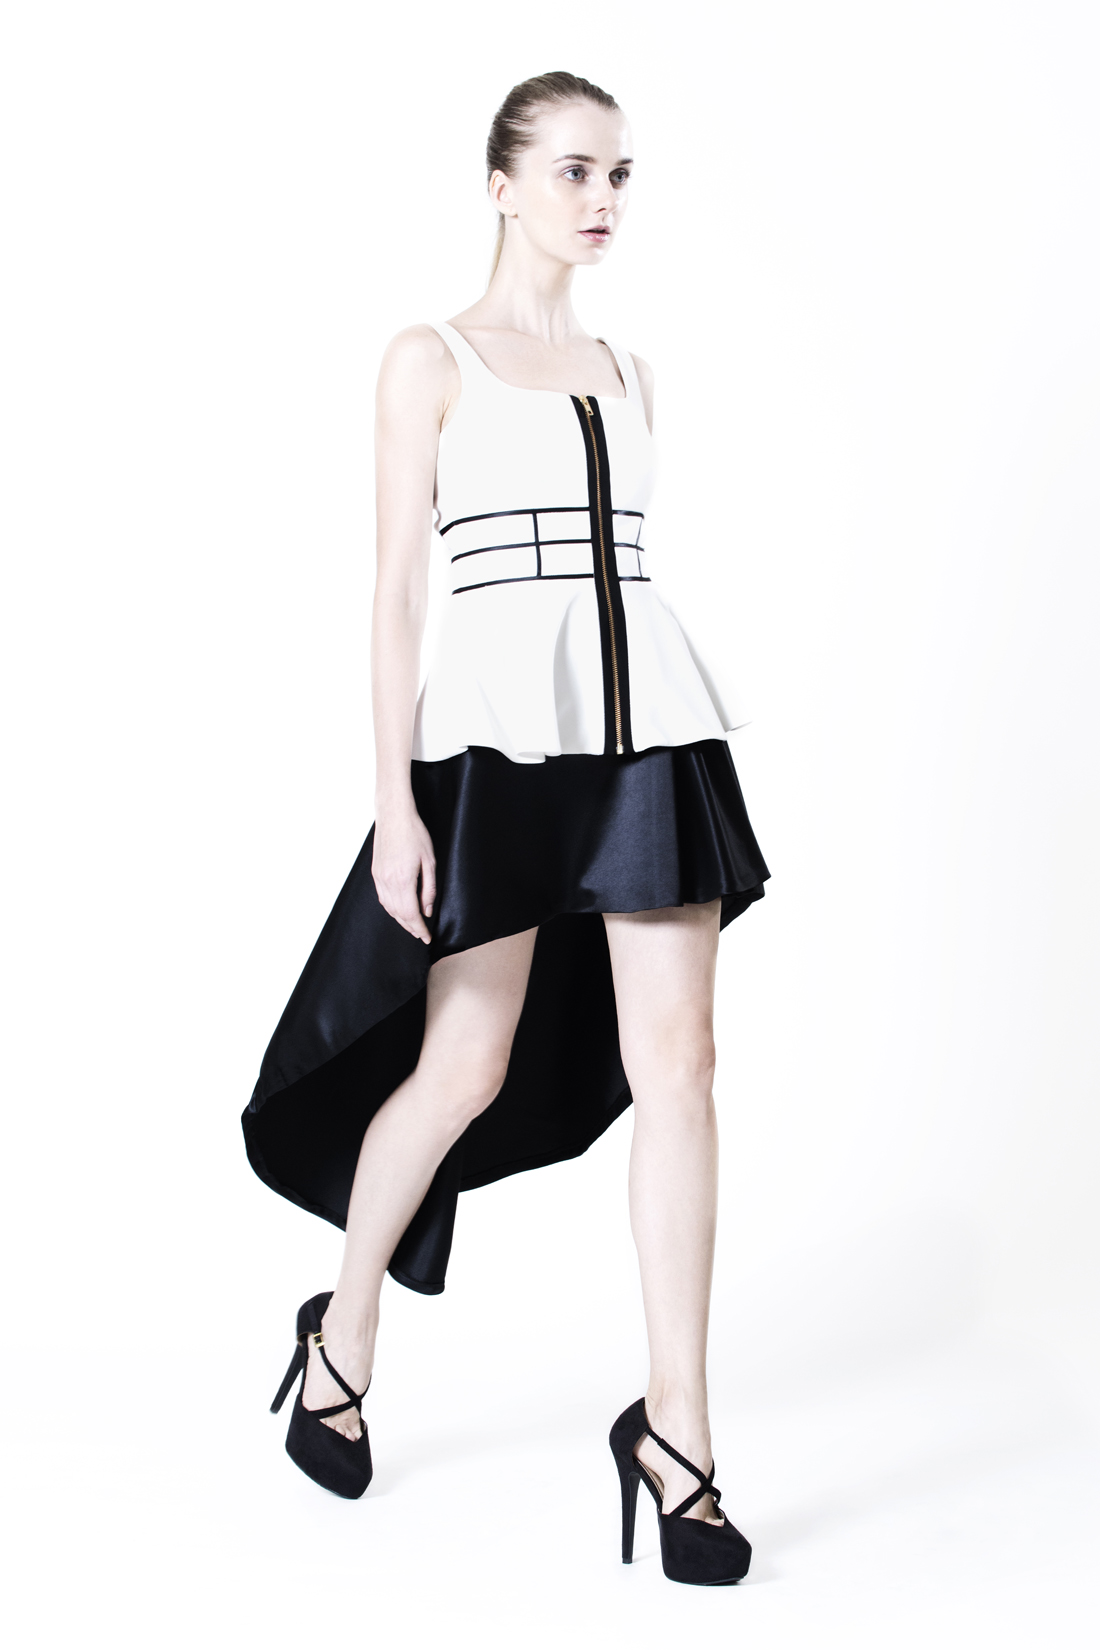 sr-cella top and suzanne skirt.jpg